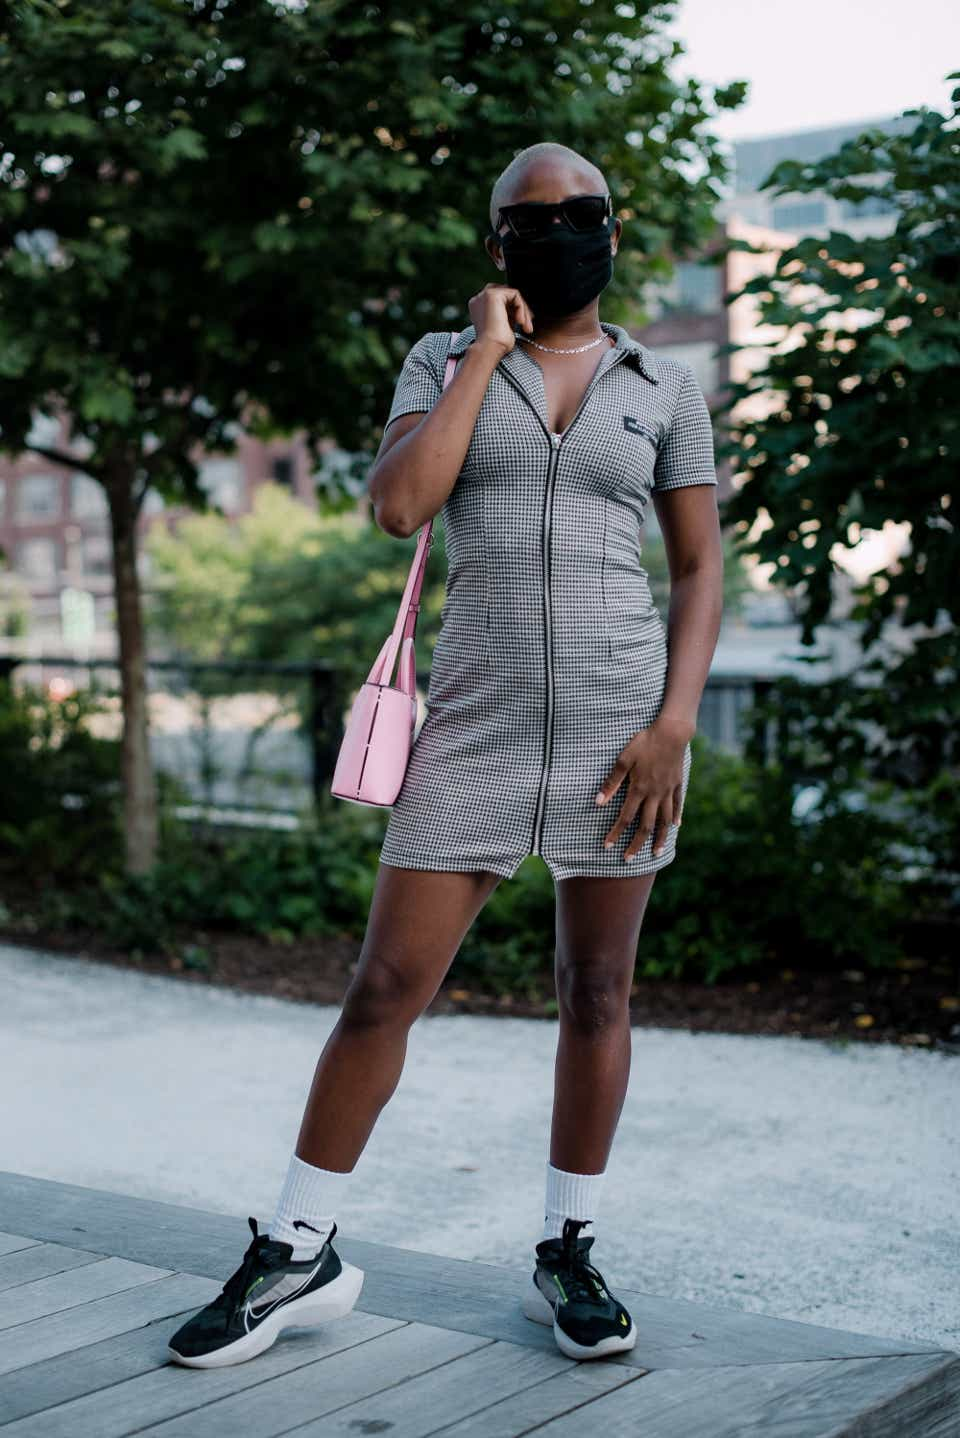 Debora is posing in a park wearing a black face mask and black sunglasses. She has on a black-and-white polo mini dress with a pink handbag, sporty socks, and Nike sneakers.